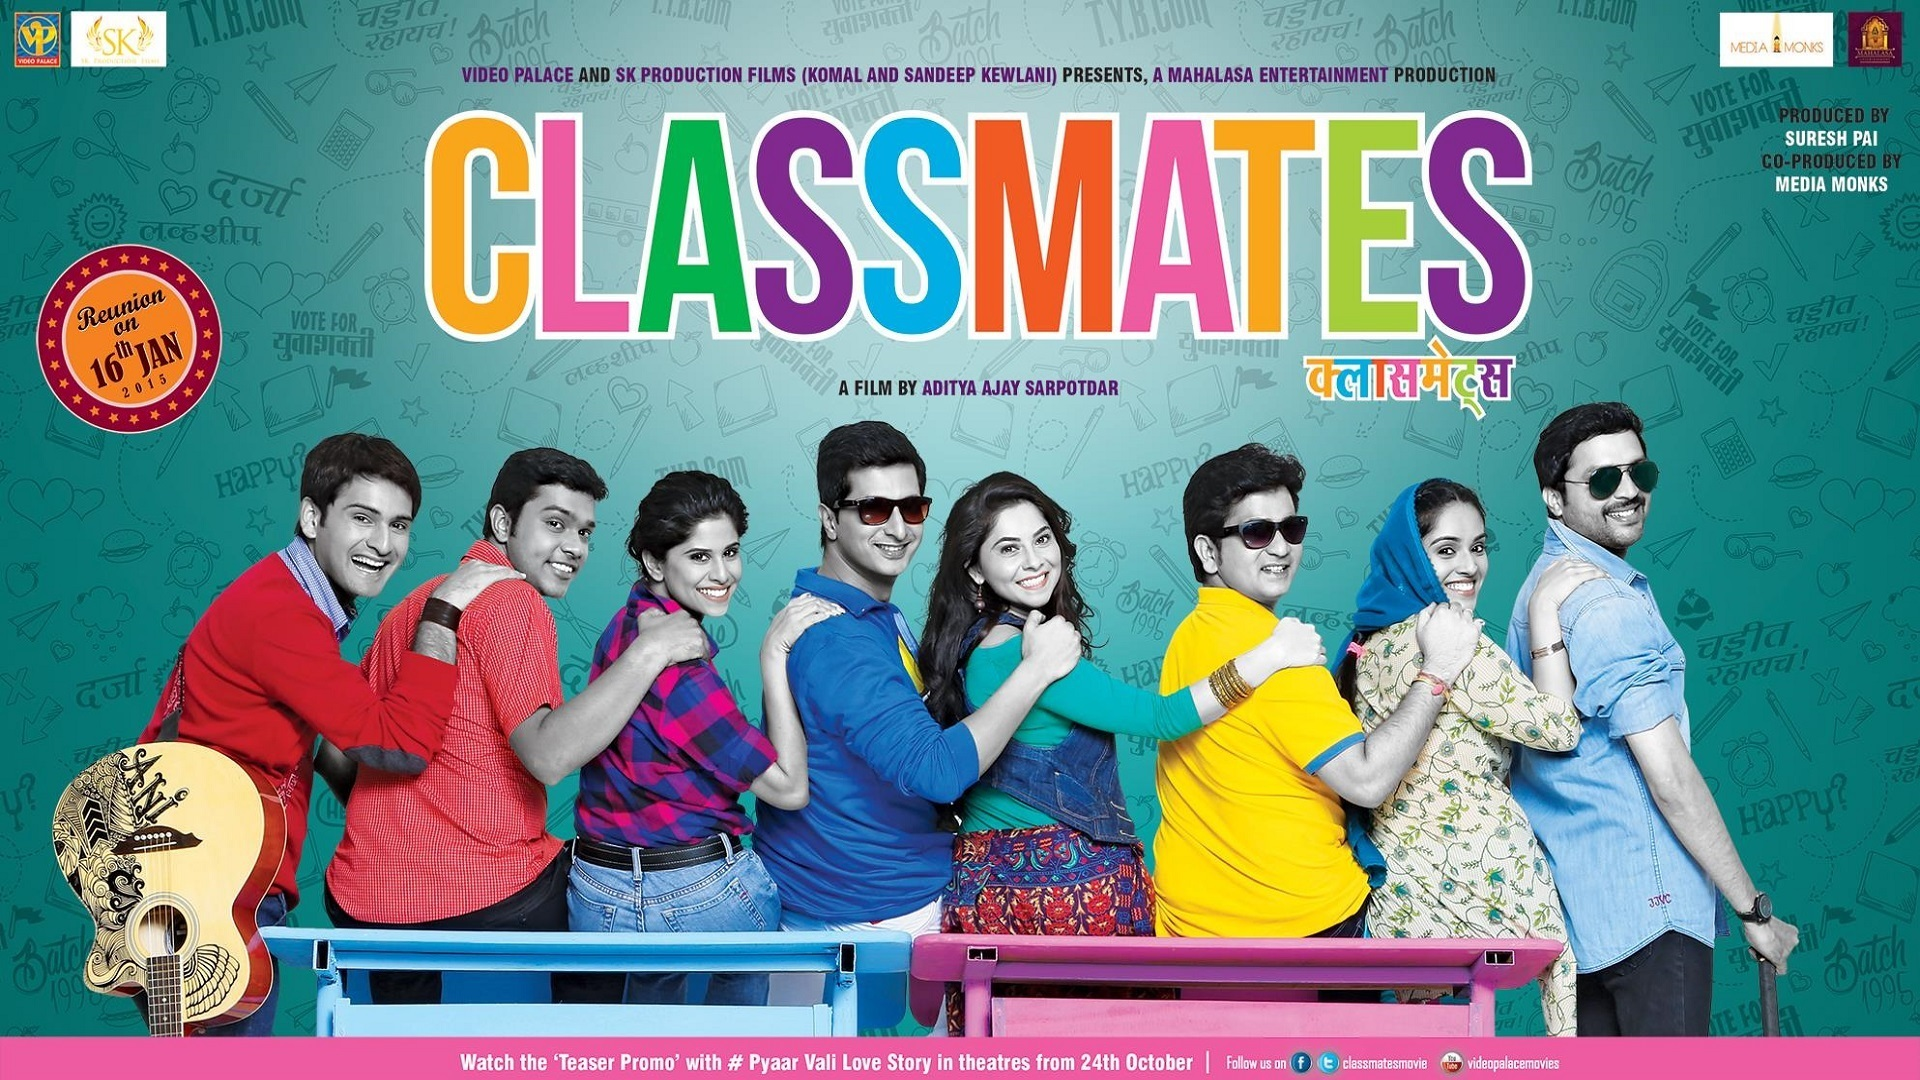 """me and my classmates """"what is a classmate """" i know that most people will say it is the people/mate that you always see in school but for me, classmates are like my second family, my second brothers and sisters at school."""